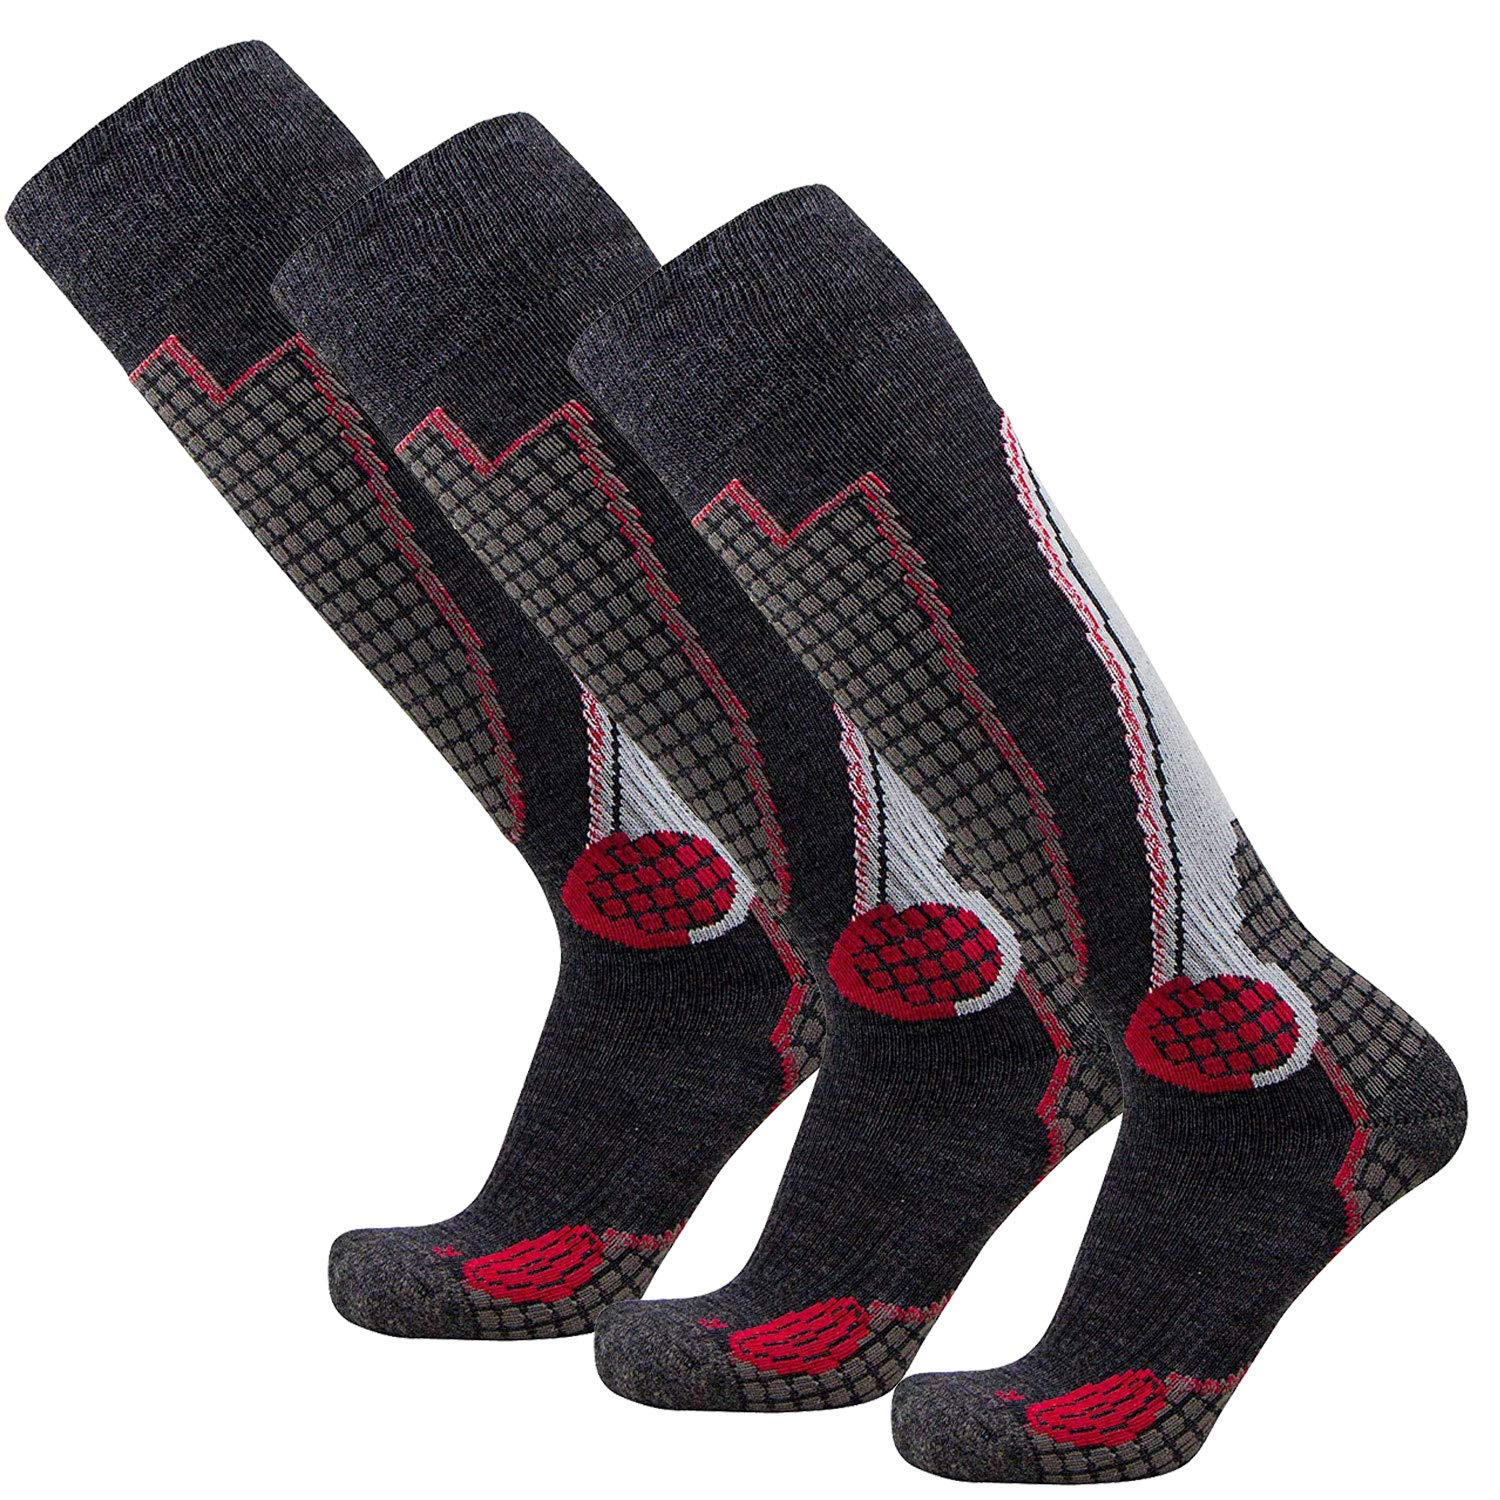 Pure Athlete High Performance Wool Ski Socks - Outdoor Wool Skiing Socks, Snowboard Socks (Black/Grey/Red - 3 Pack, Medium) by Pure Athlete